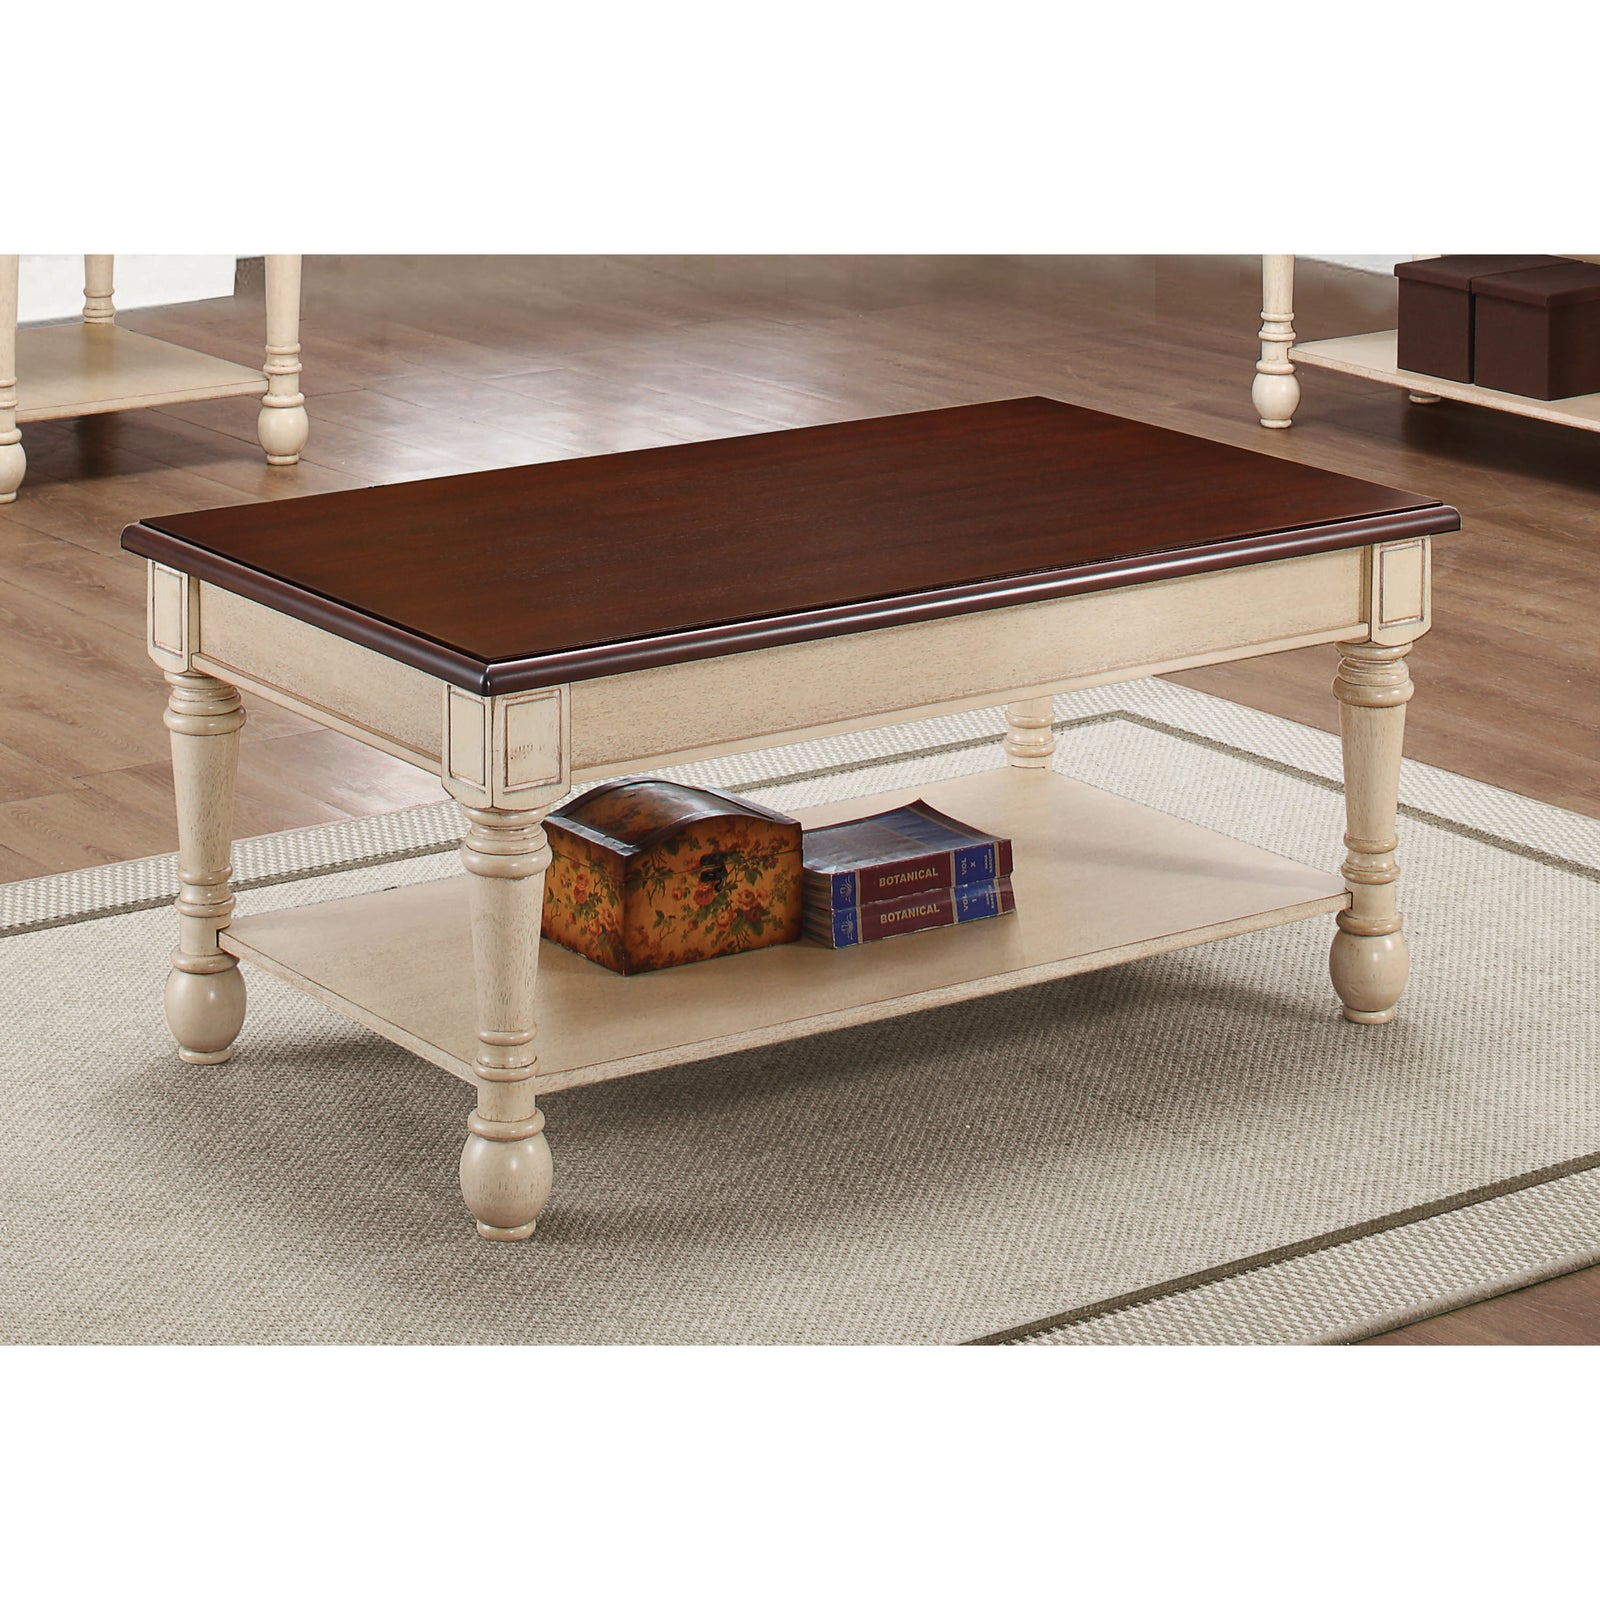 Coaster 704418 | Rectangular Coffee Table Side Desk With Lower Shelf Dark Brown And Antique White